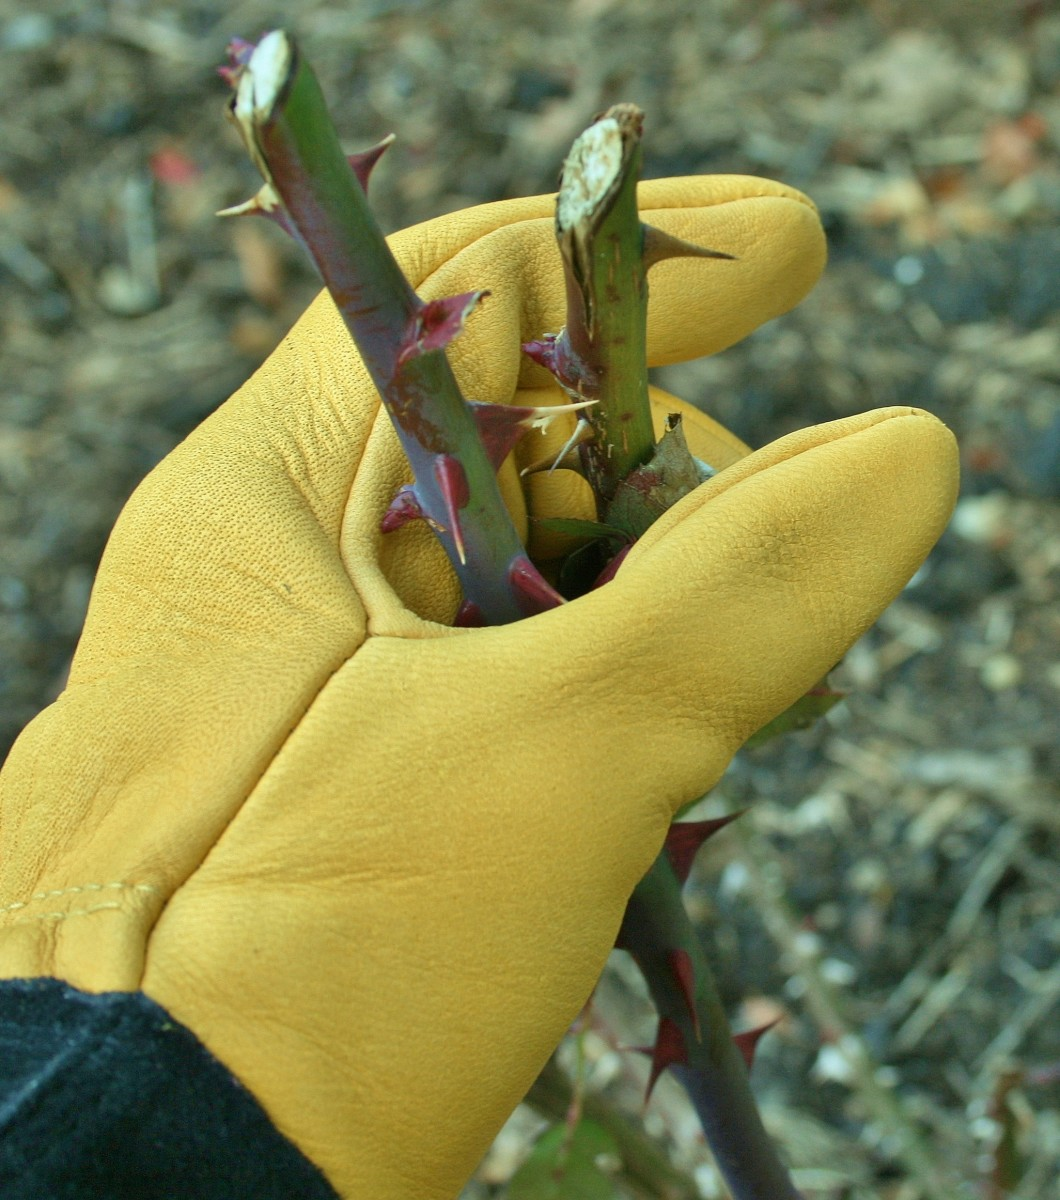 Wearing Tough Touch gloves, I don't have to worry about getting pricked by thorns on rose bush canes.